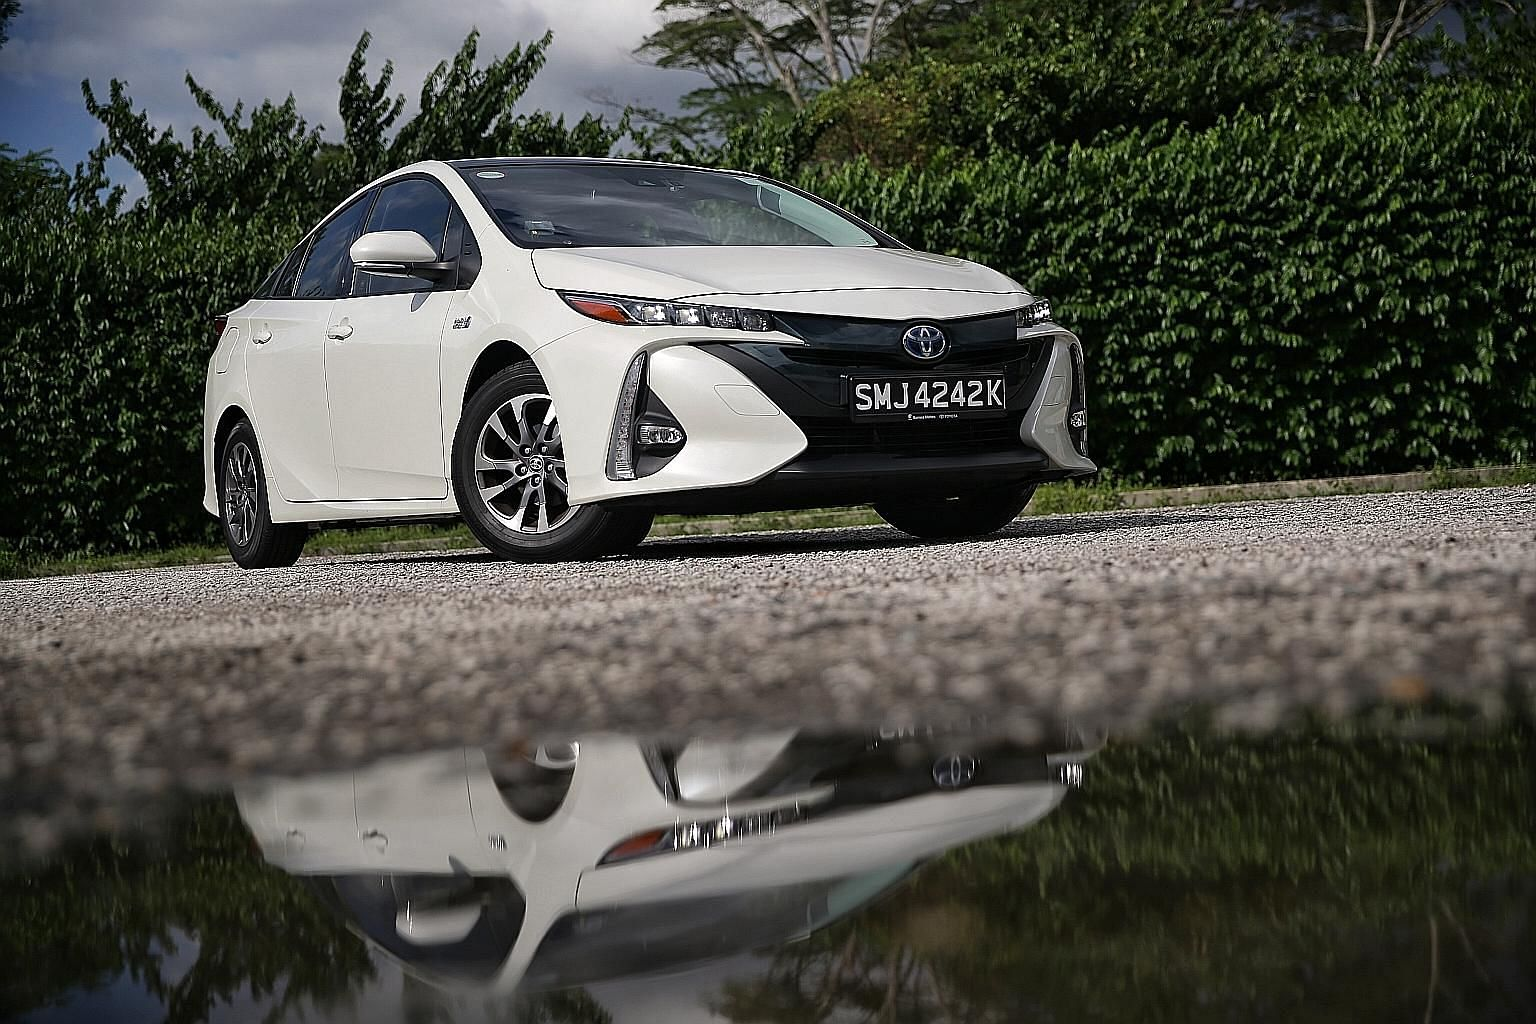 The Toyota Prius PHV (plug-in hybrid vehicle) clocks a century sprint of 11.1 seconds and has a top speed of 160kmh.